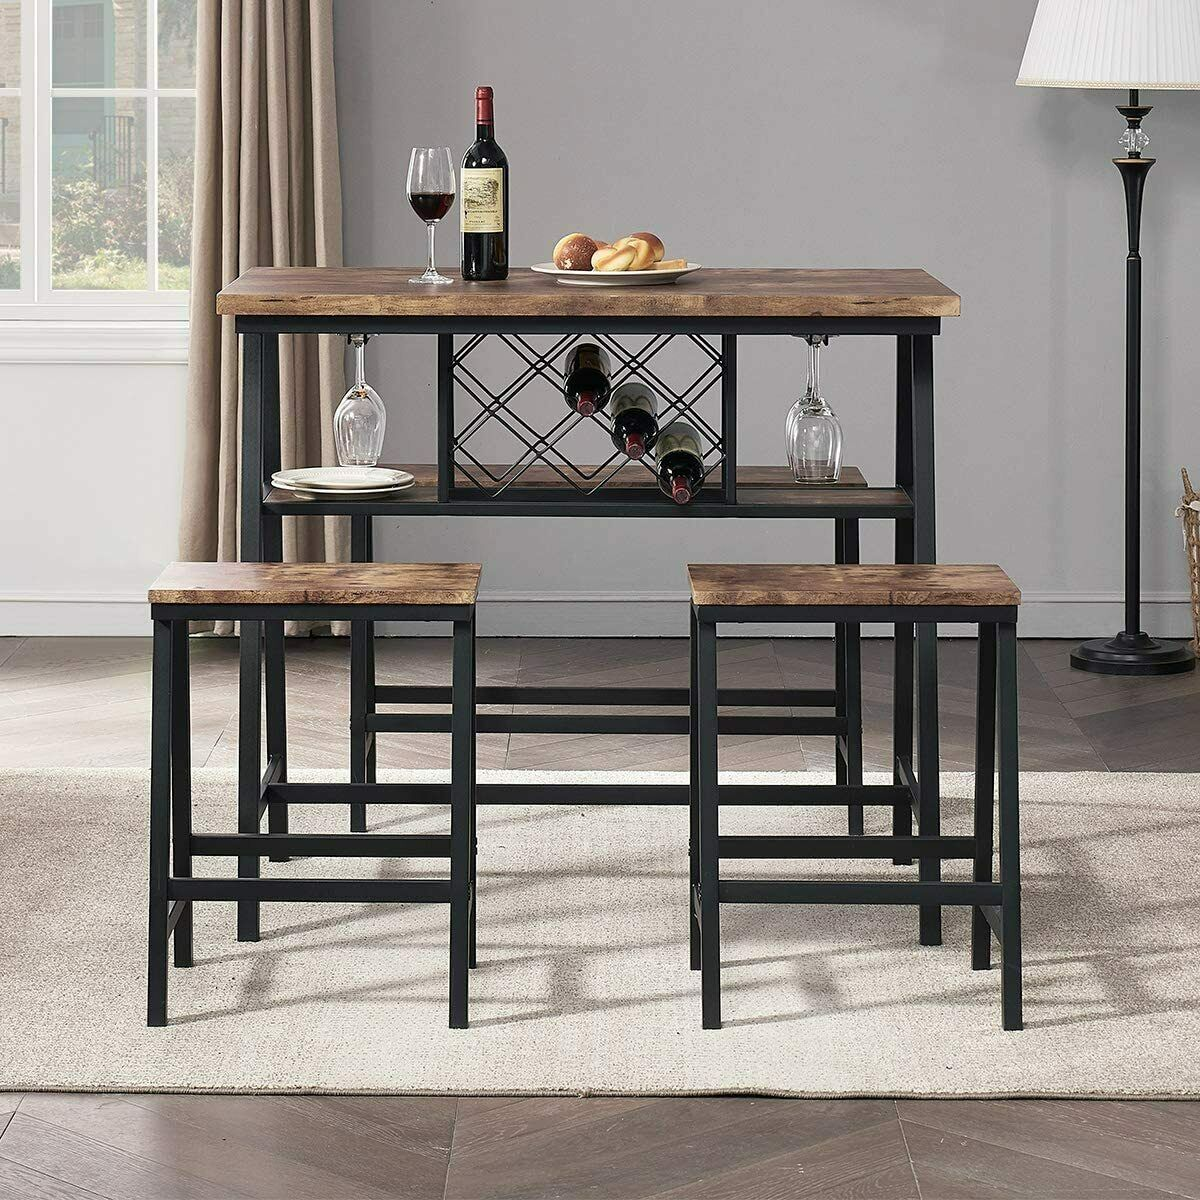 O K Furniture 4 Piece Counter Height Dining Room Table Set Bar Table With One B For Sale Online